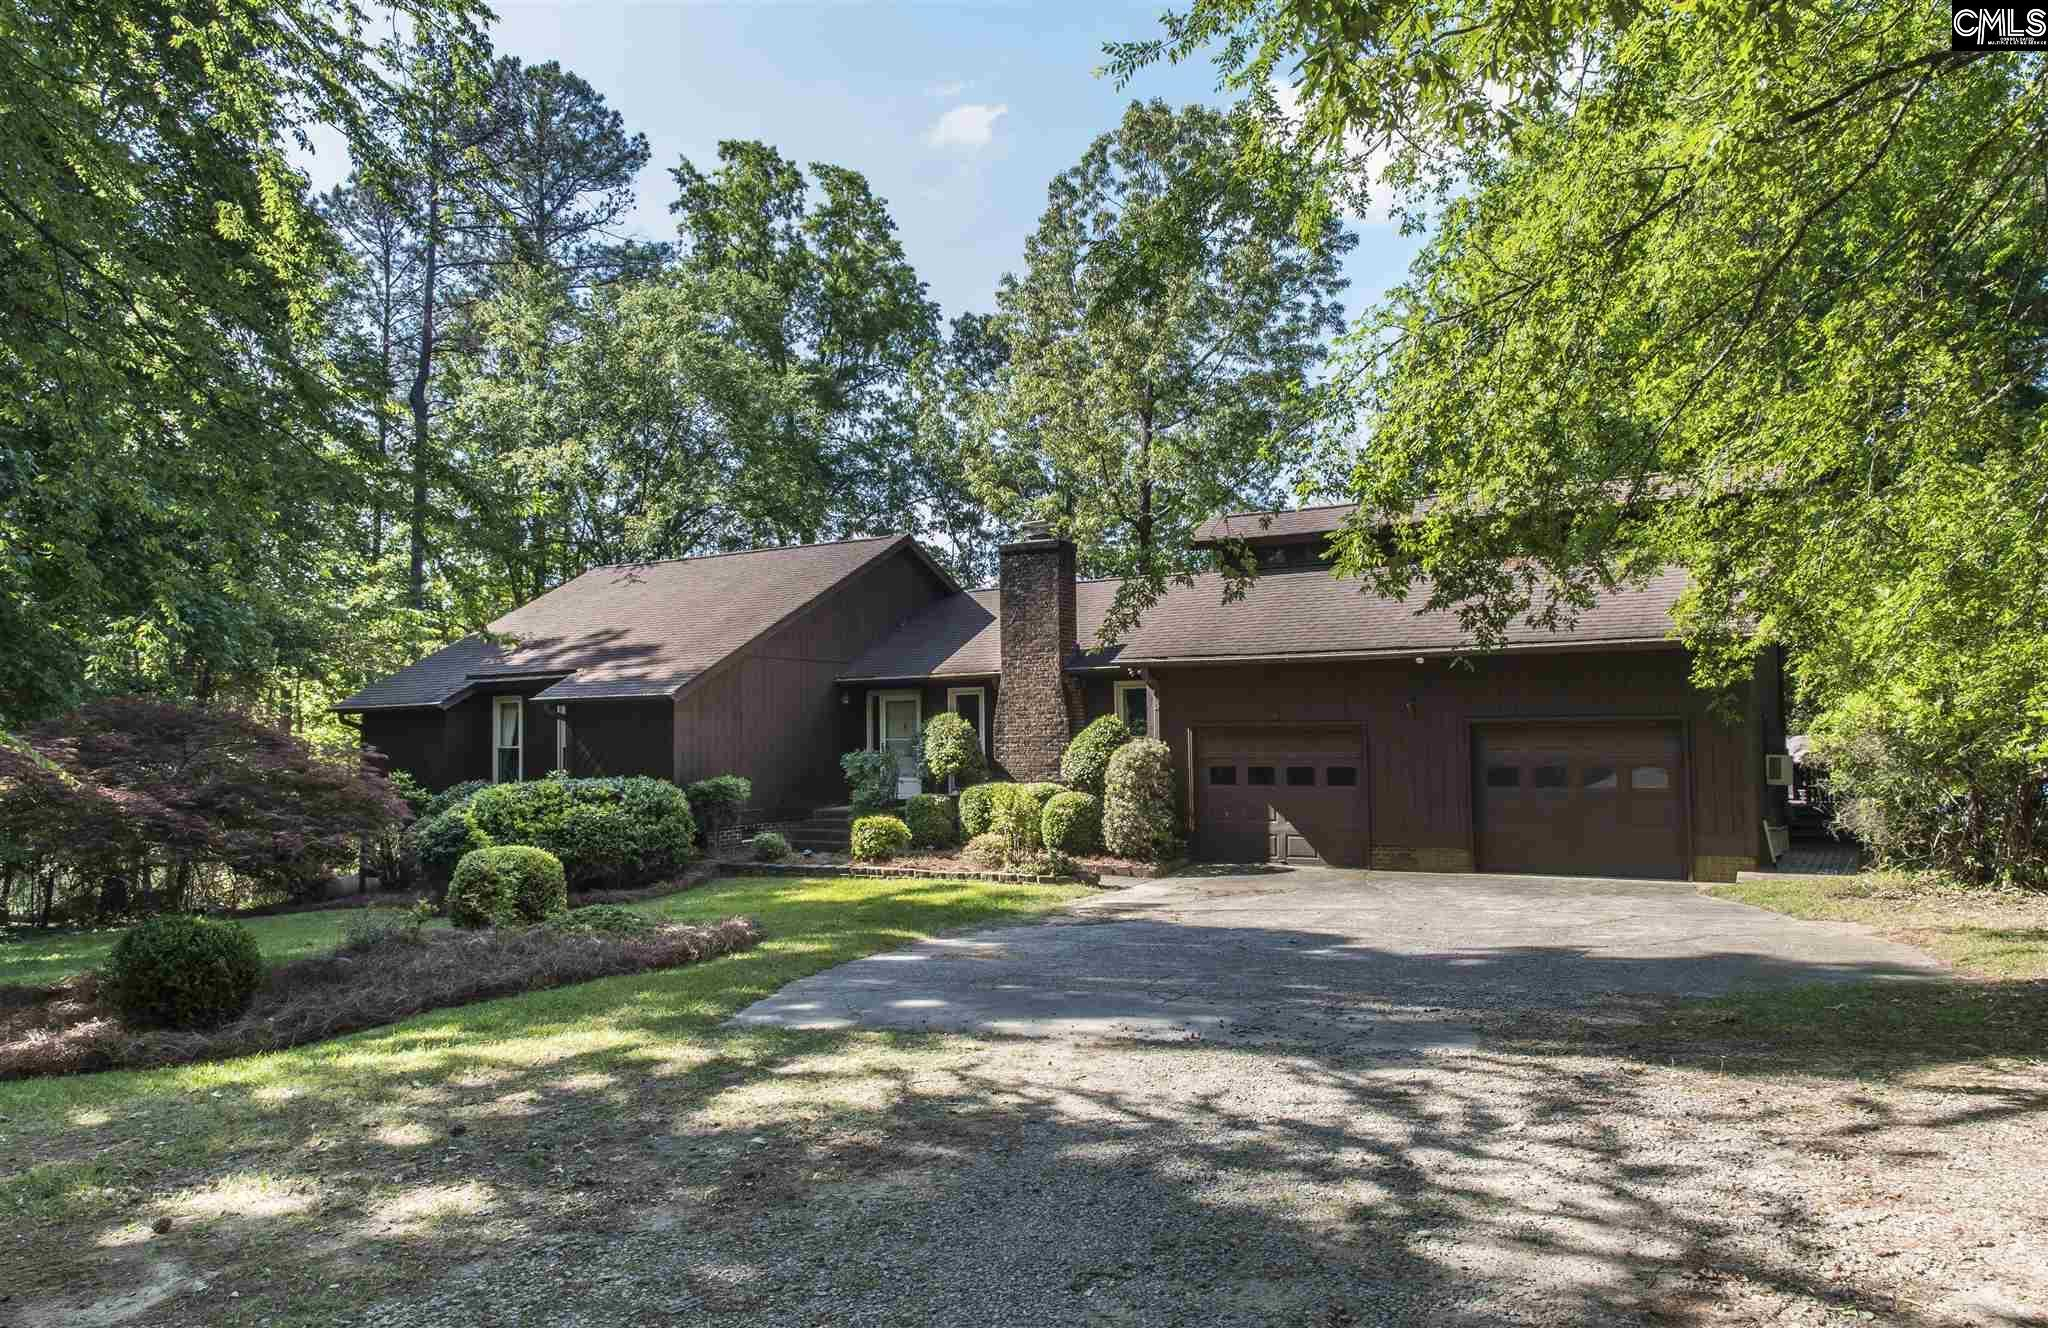 3 Bed / 2 Baths Home In Chapin For $492,000